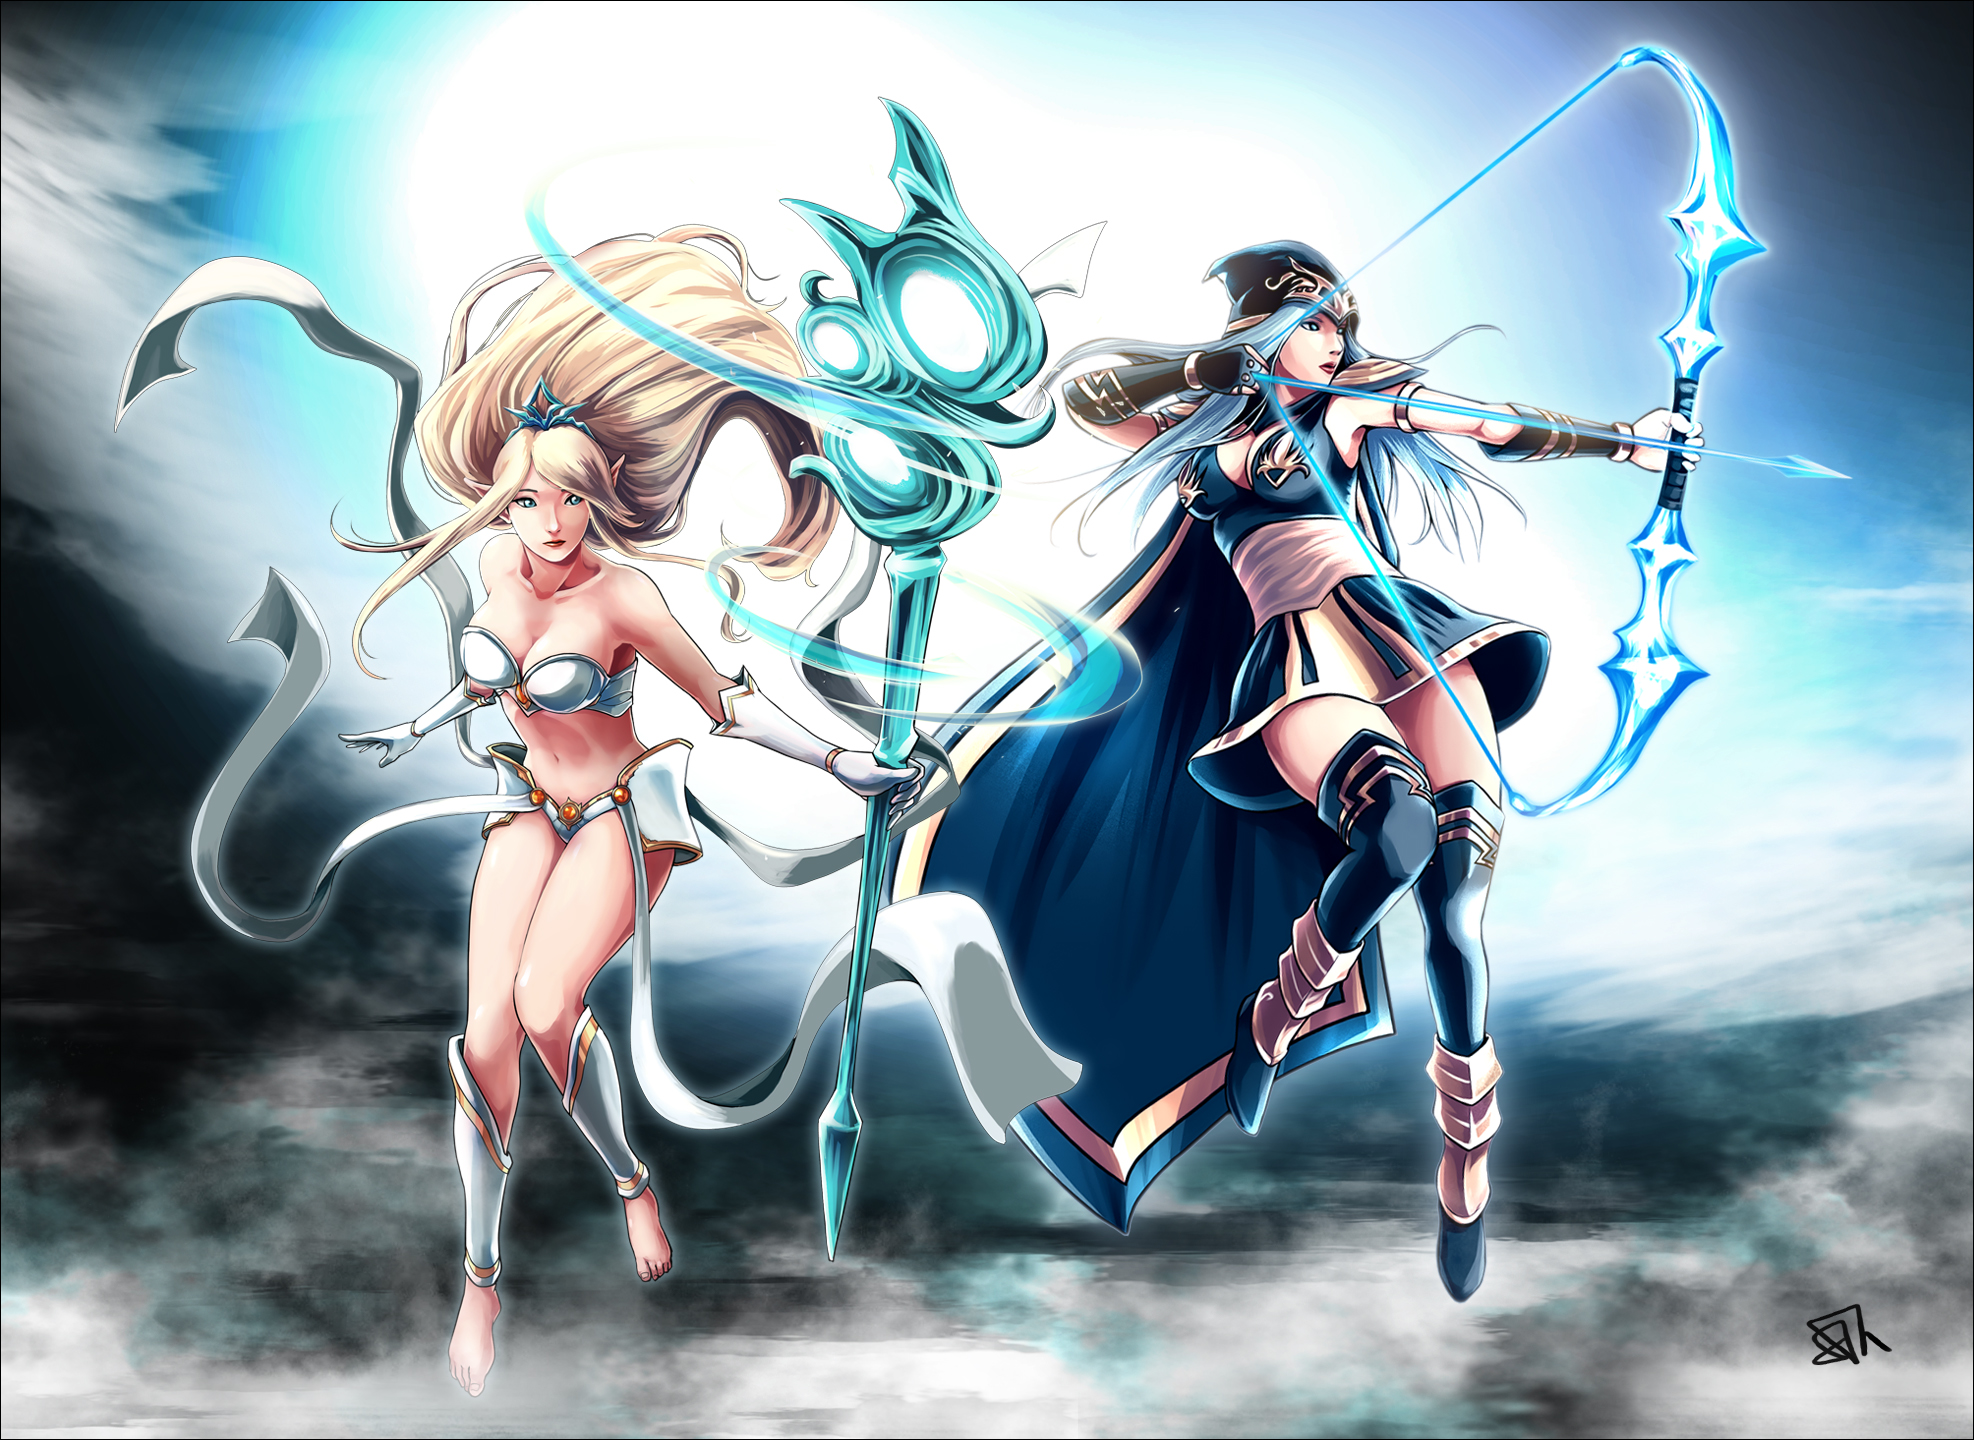 Ashe & Janna wallpaper